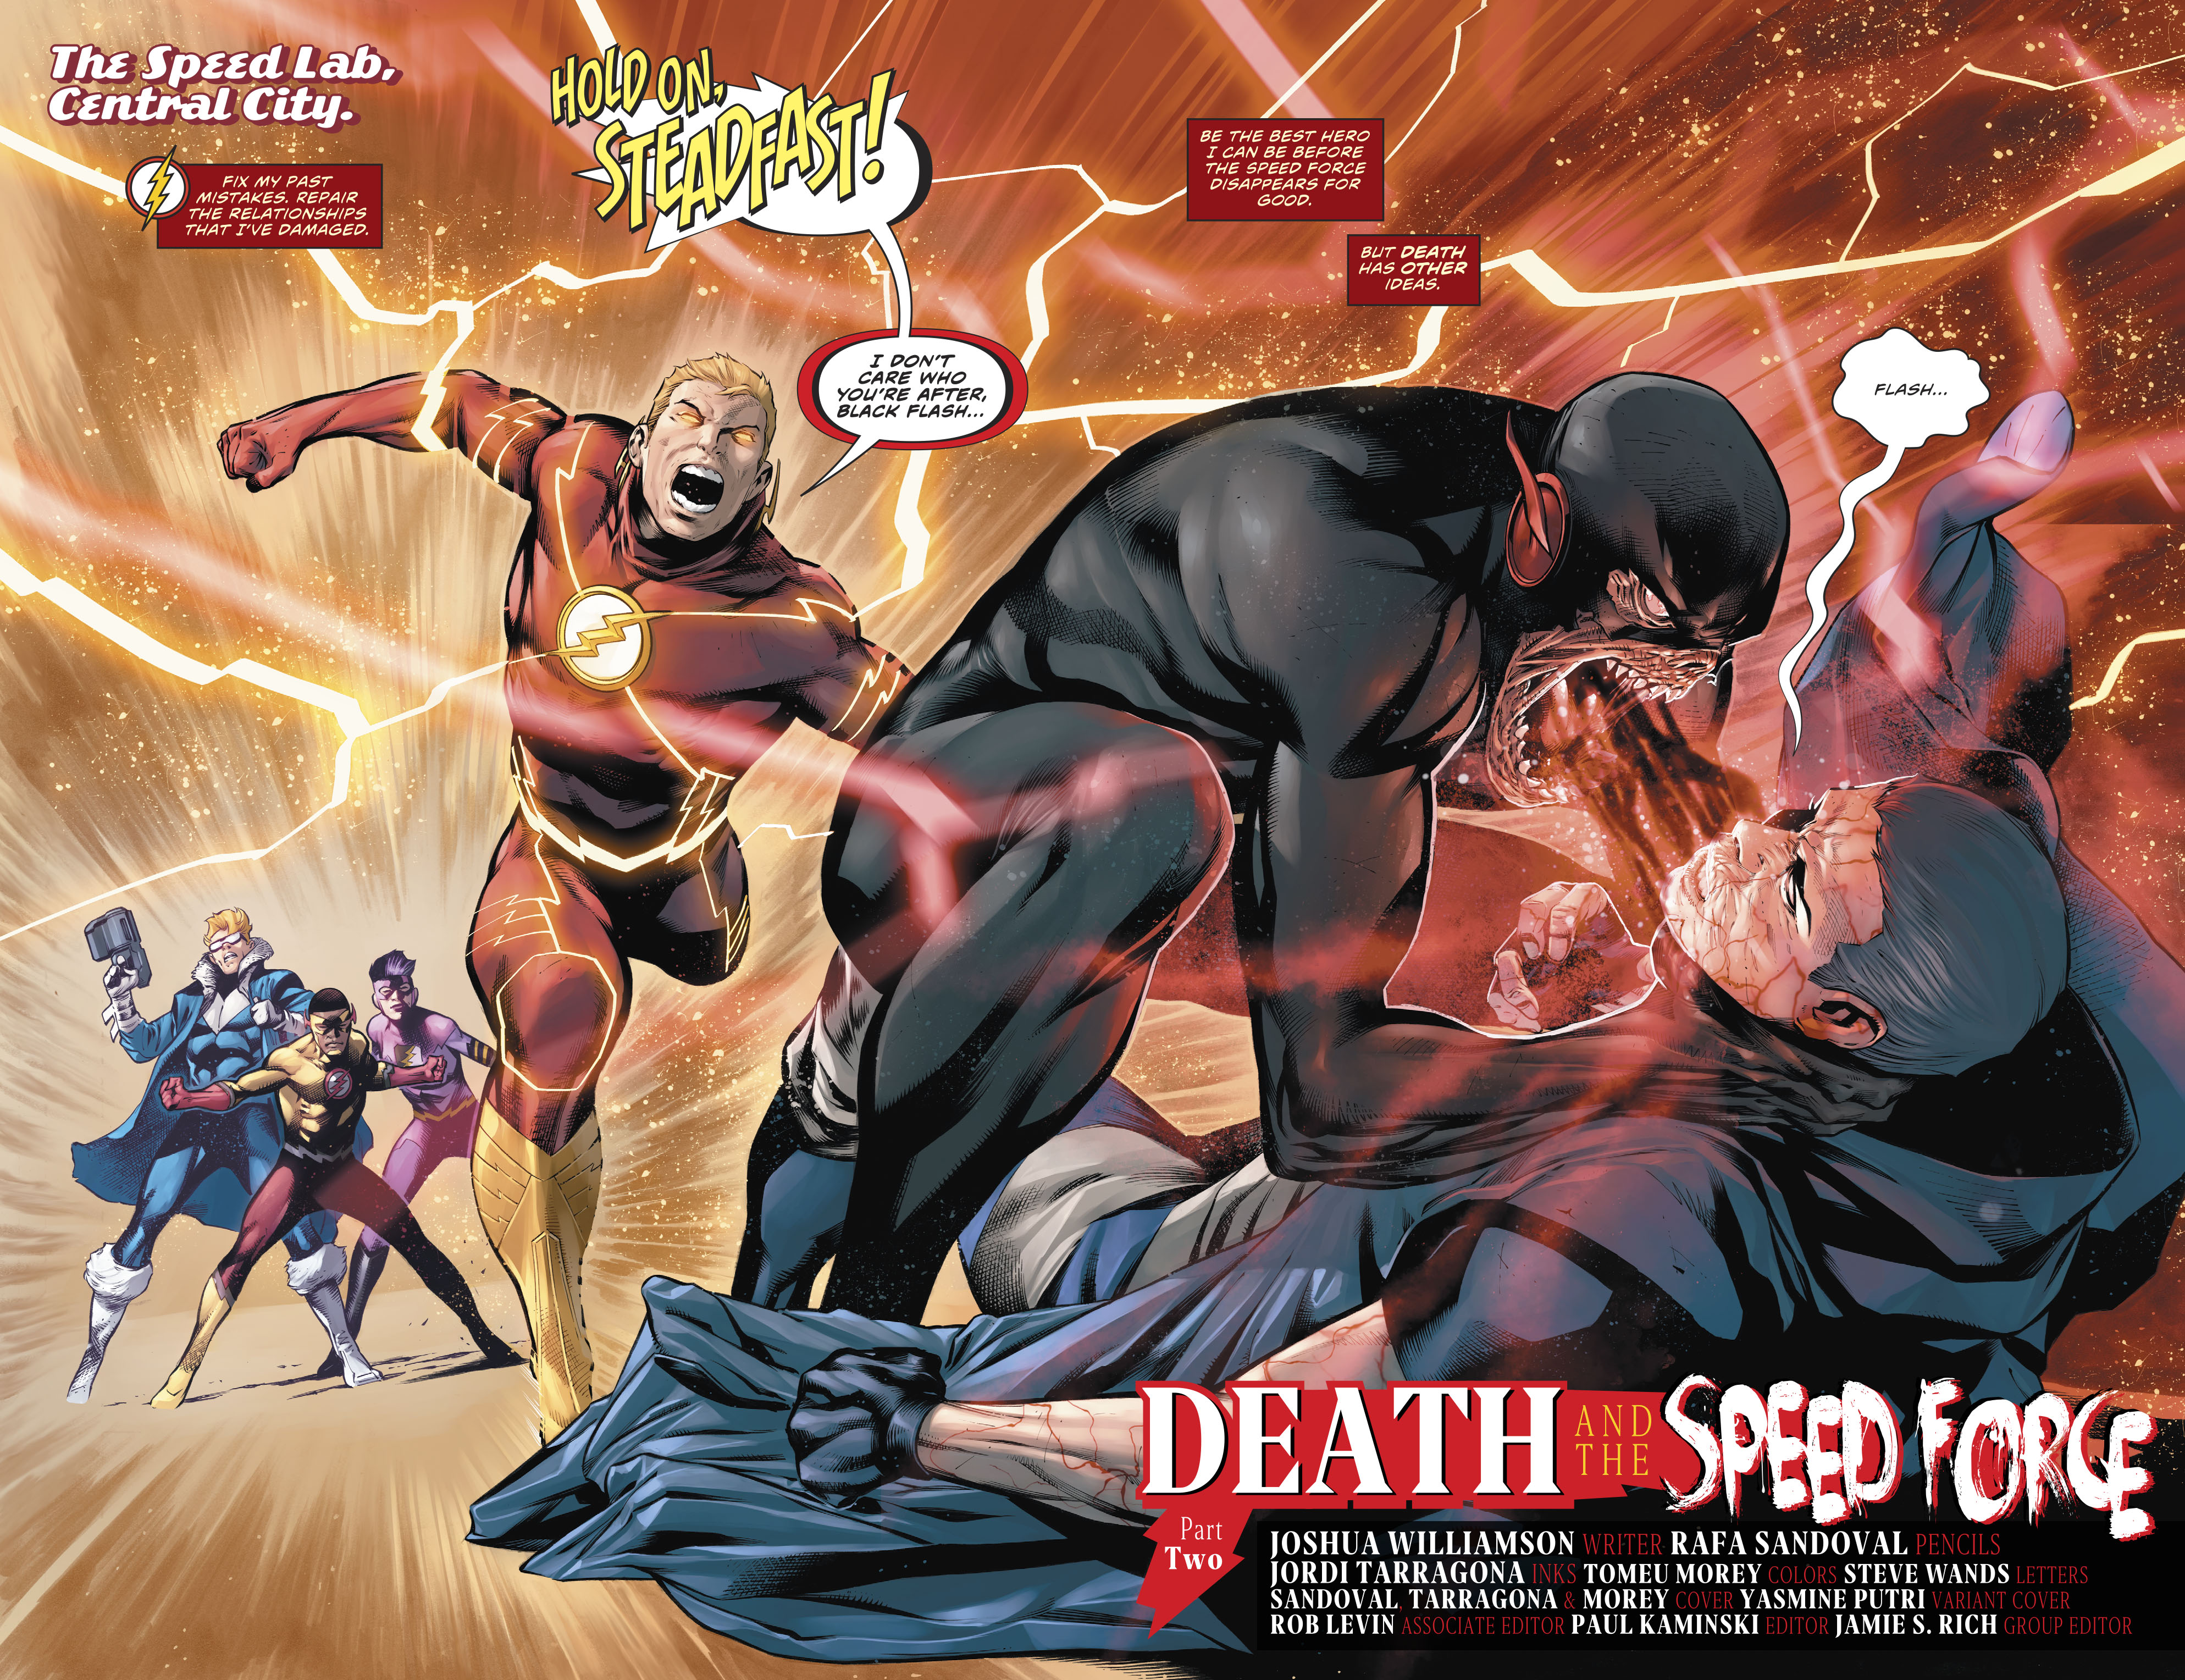 Dc Comics Universe The Flash 77 Spoilers Review Forces Collide With Speed Force Still Force Strength Force Sage Force Black Flash Of Death Plus Dc S Year Of The Villain